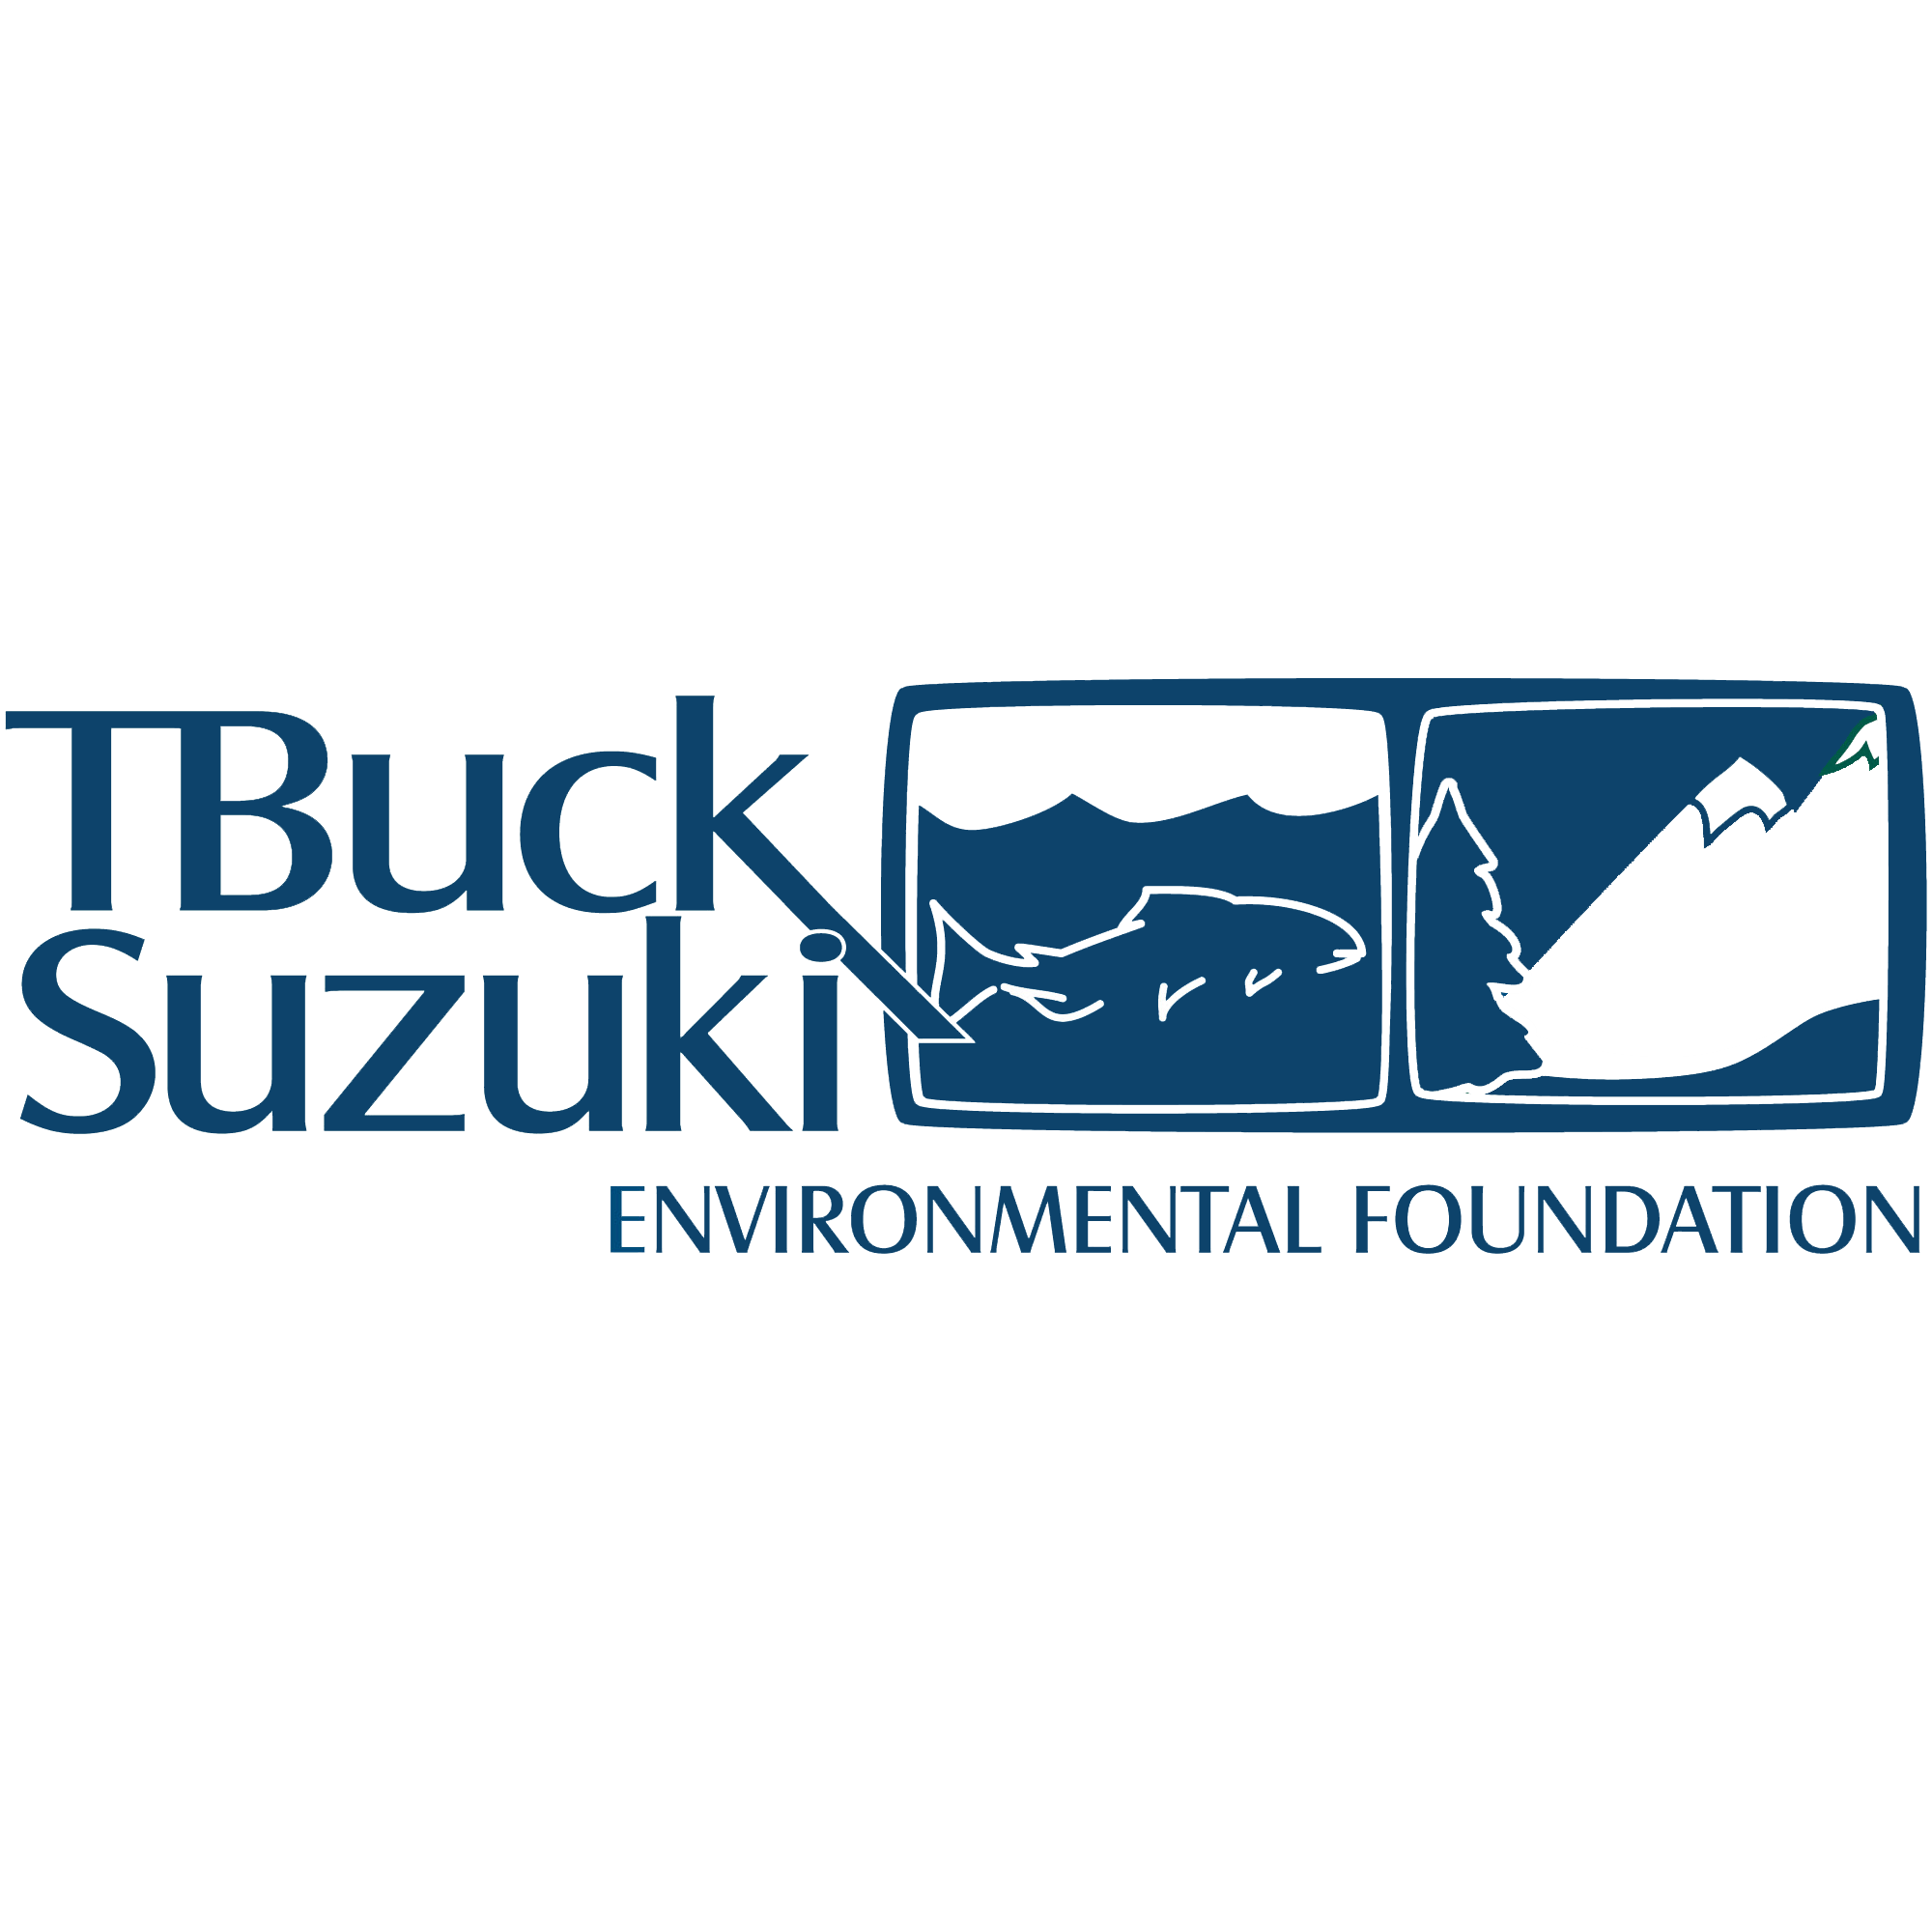 T. Buck Suzuki Foundation